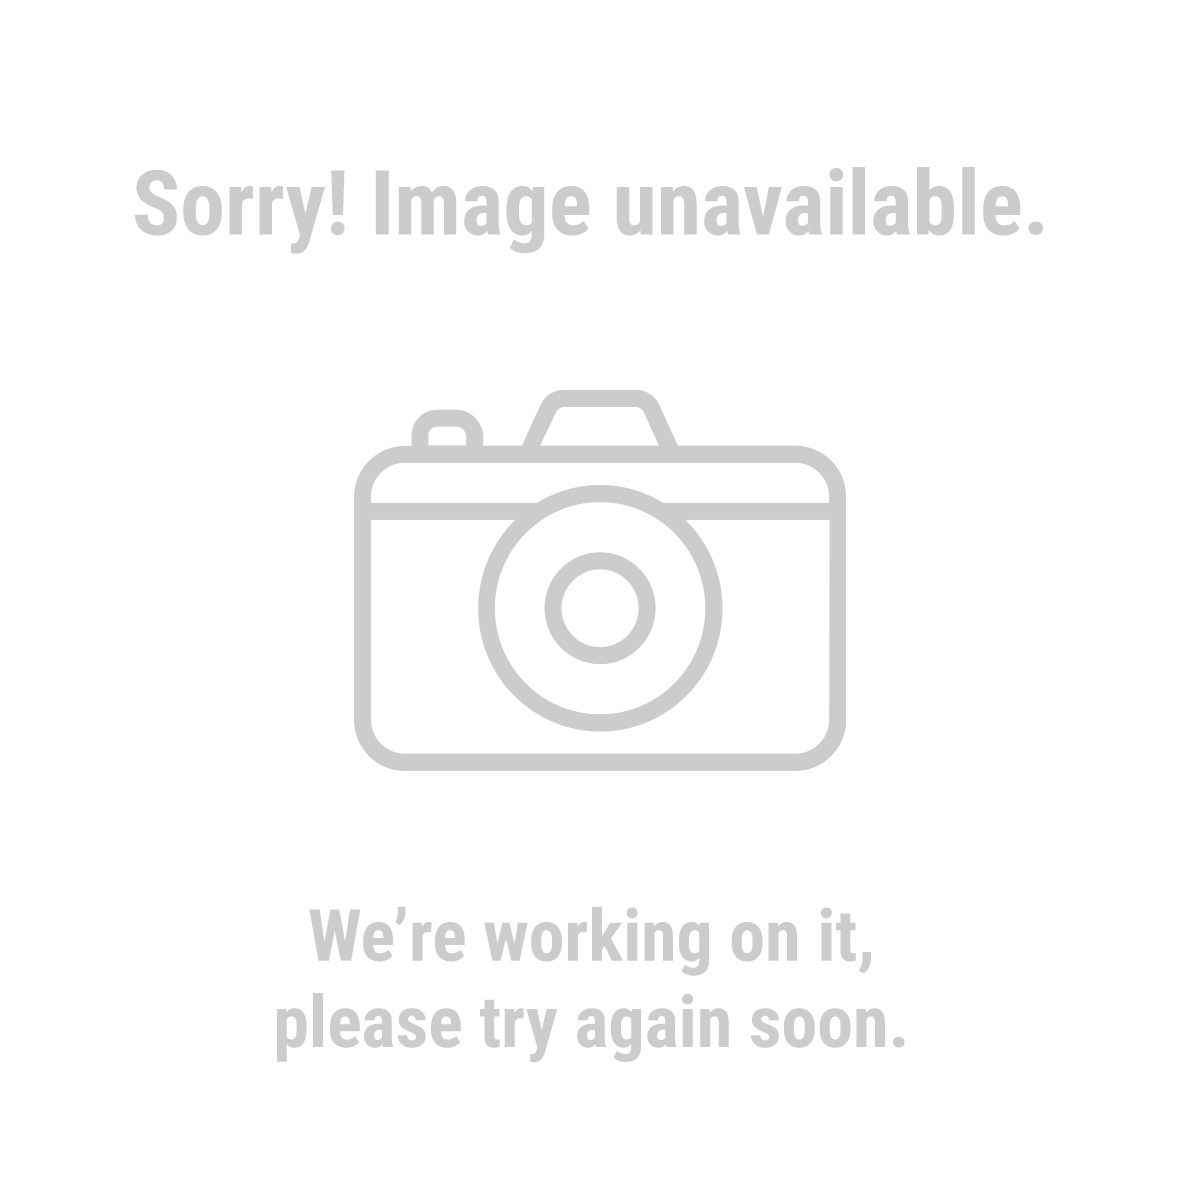 Gordon 94527 10 x 50 Wide Angle Binoculars